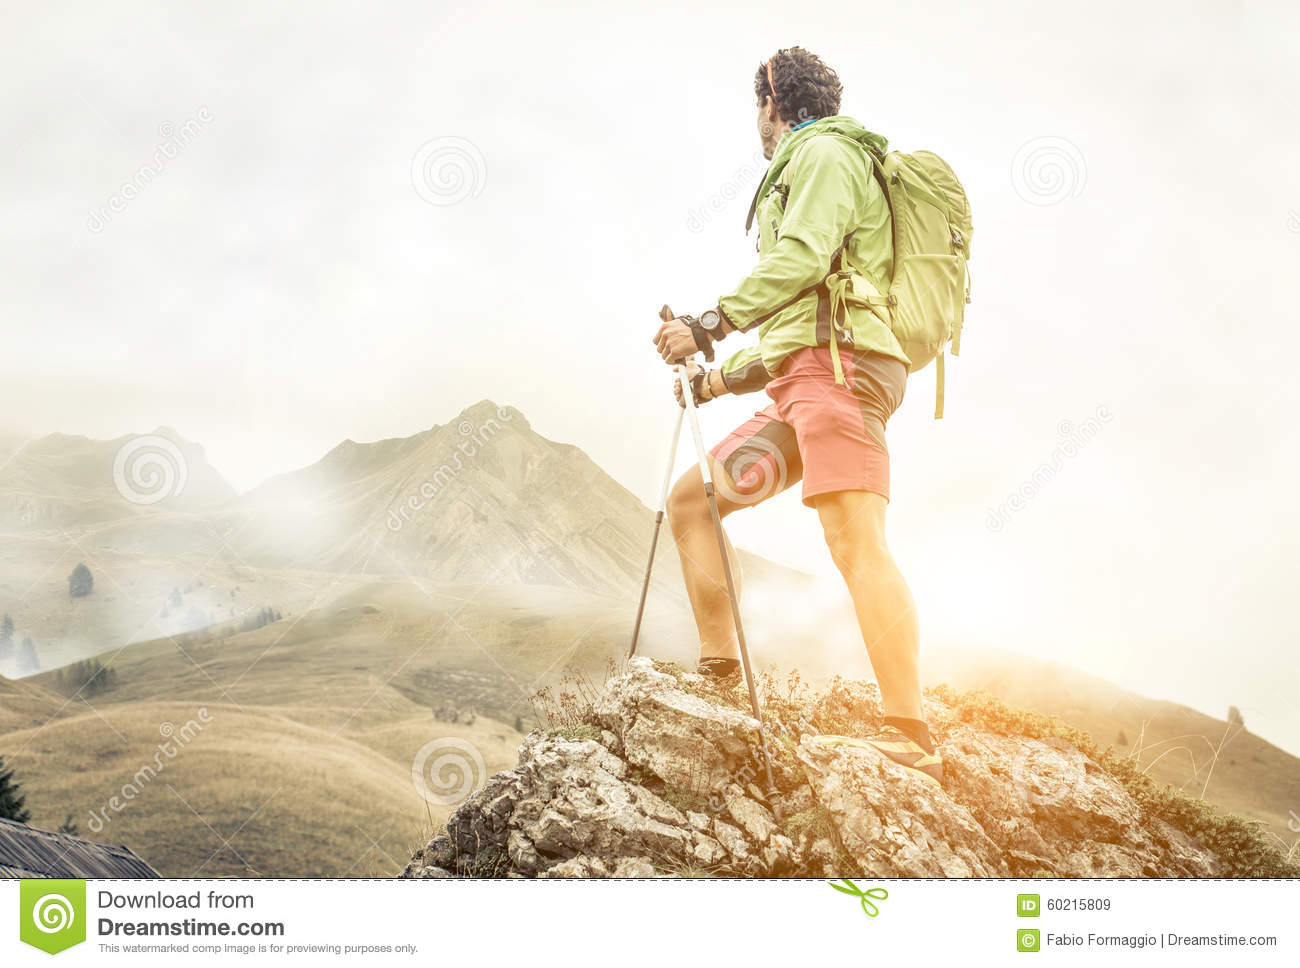 Hiker climbing on the mountains.